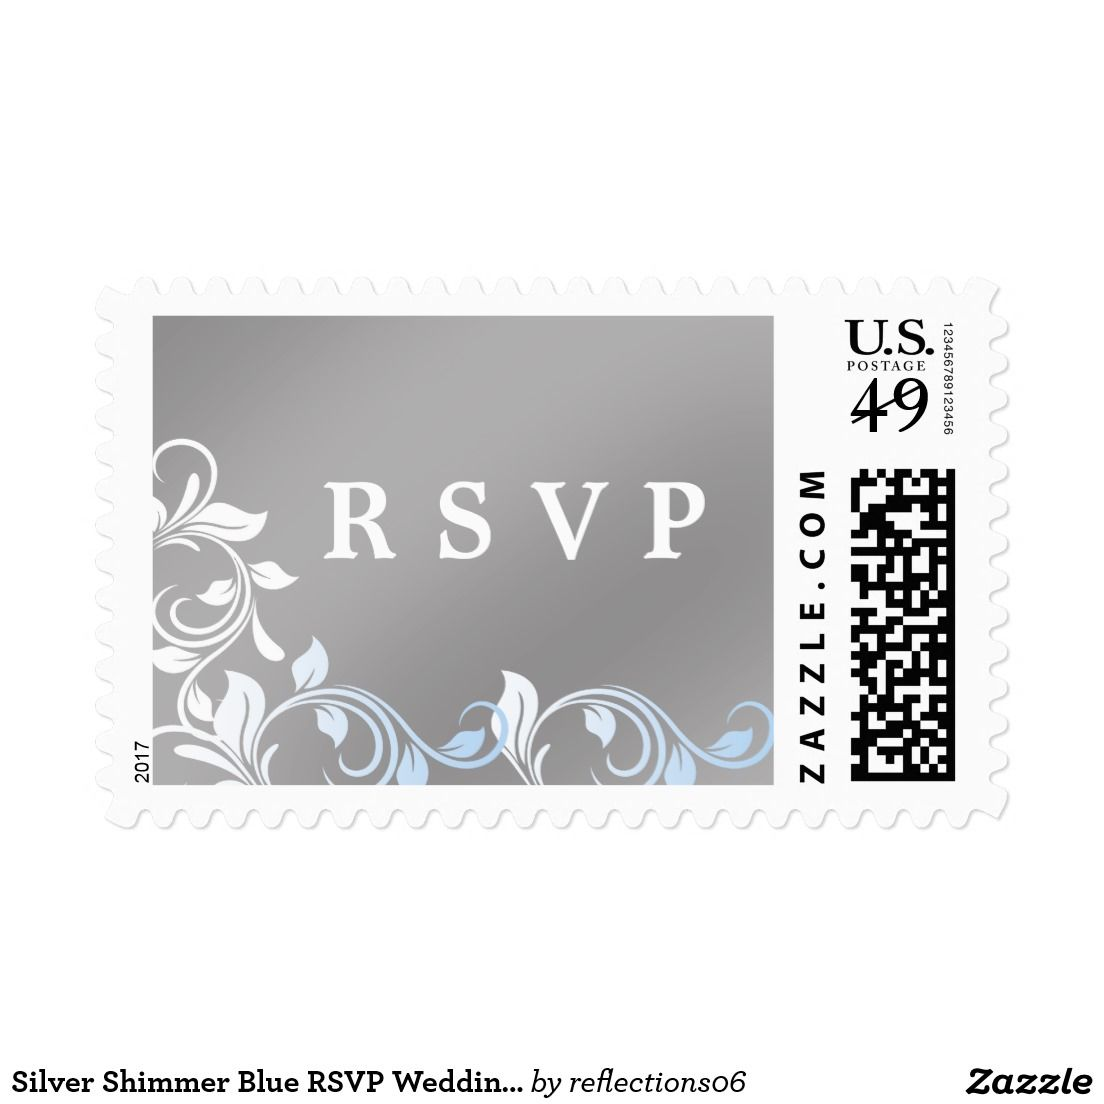 Silver Shimmer Blue RSVP Wedding Postage Pretty silvery shimmering custom wedding postage for your upcoming magical day.